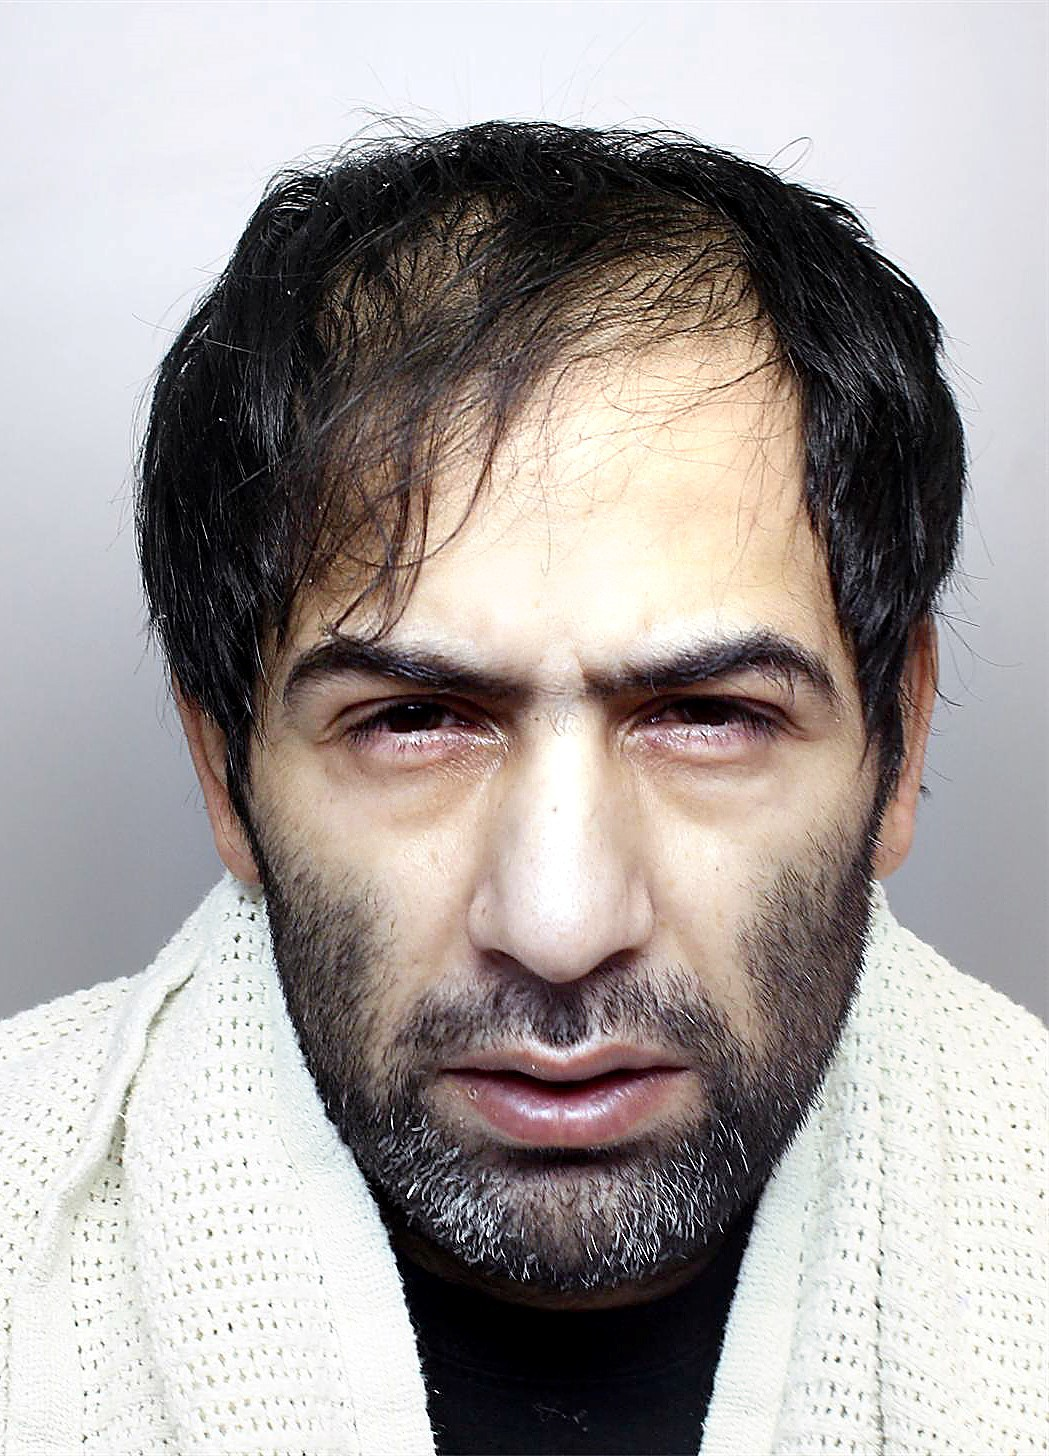 Muzafer Akram, who was jailed for three years and nine months for unlawful wounding